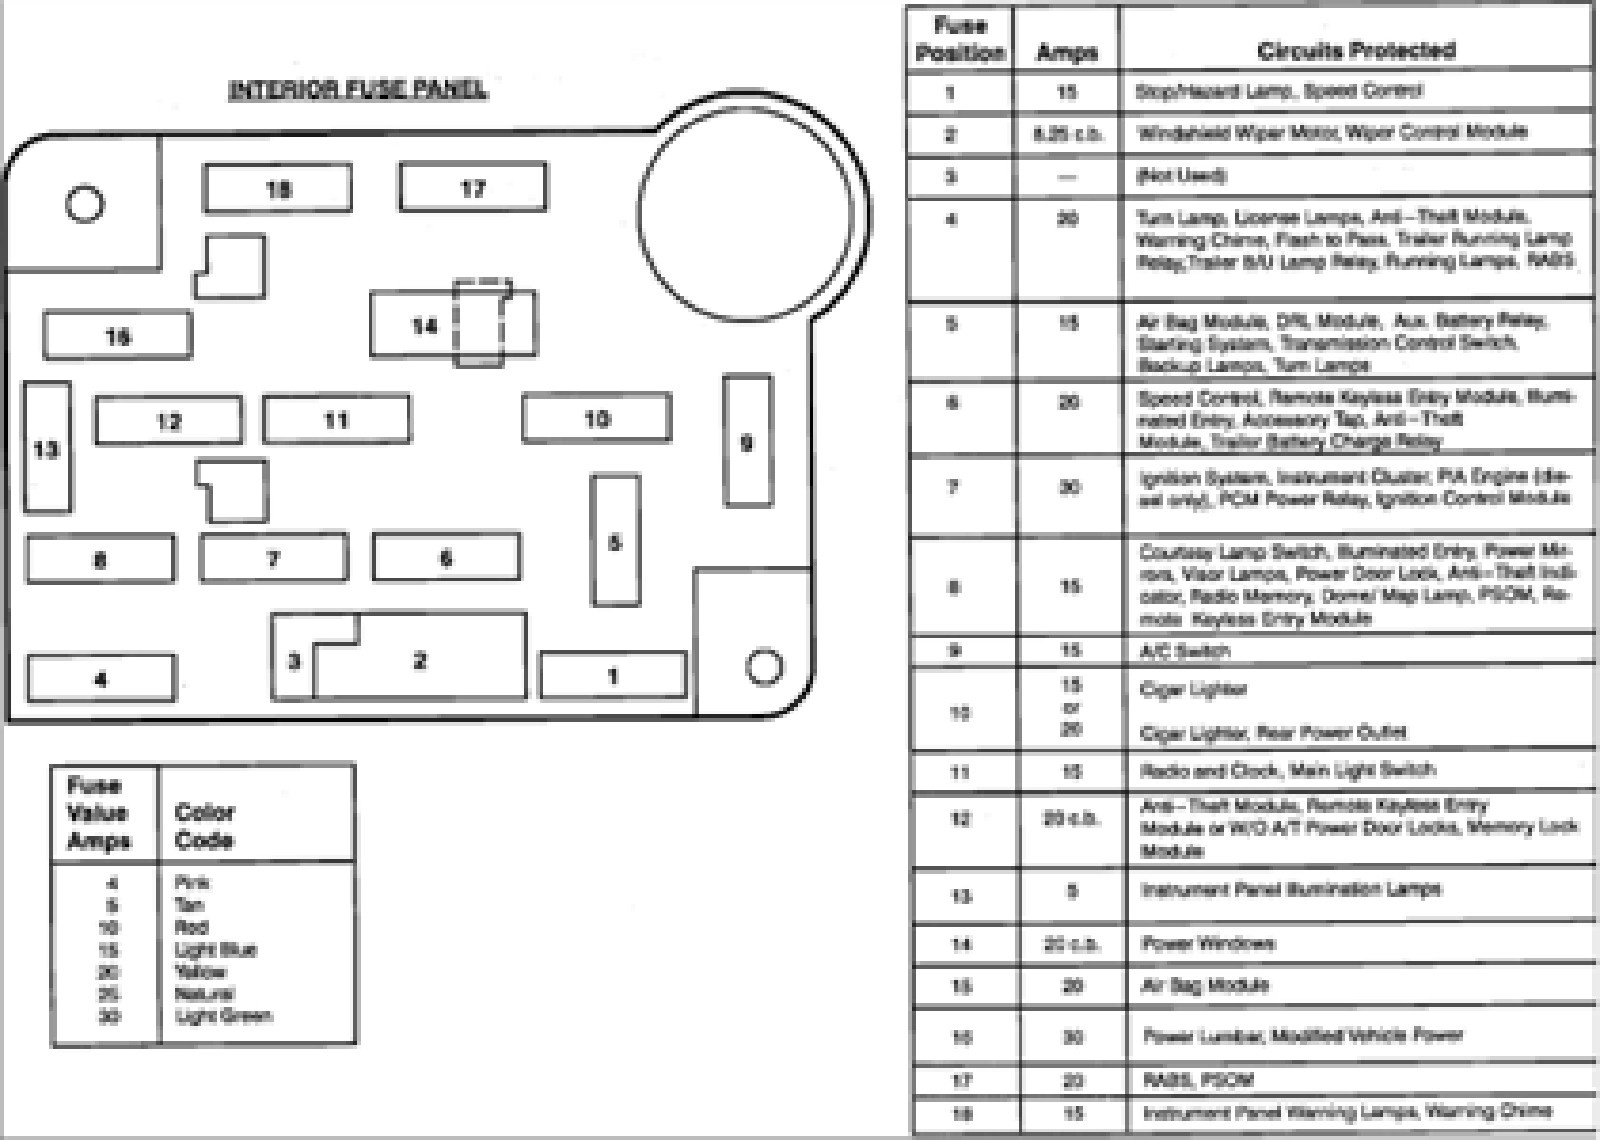 pic 8862473225641007897 1600x1200 2000 ford e150 fuse box diagram 1999 ford f 250 fuse panel diagram 2001 ford f250 fuse box diagram at crackthecode.co